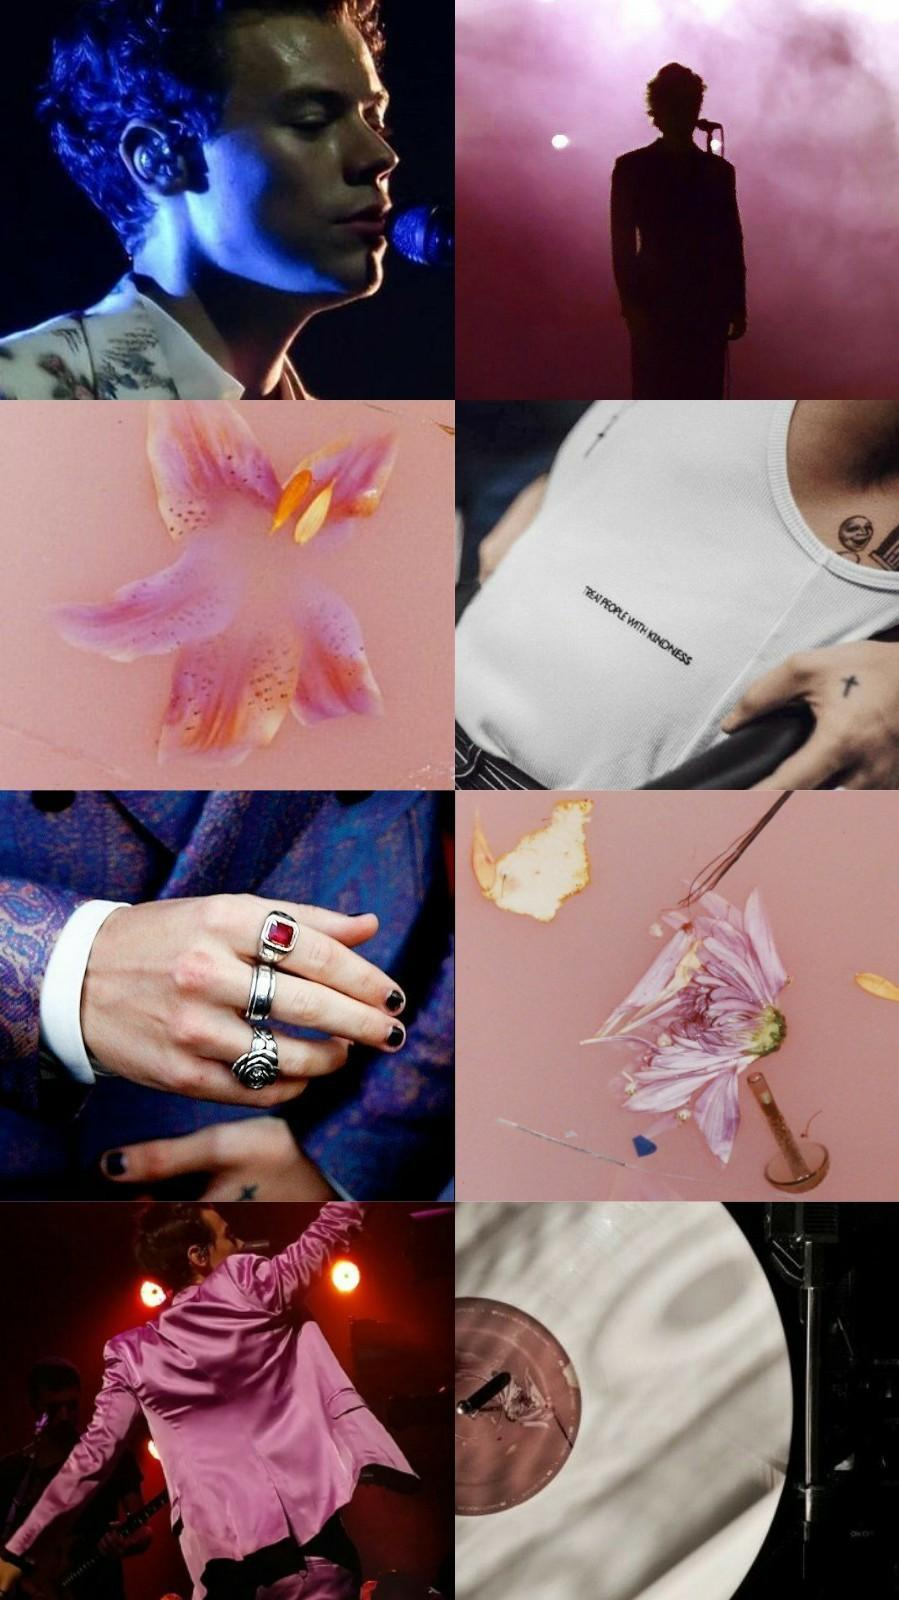 Harry Styles Aesthetic Wallpapers - Wallpaper Cave